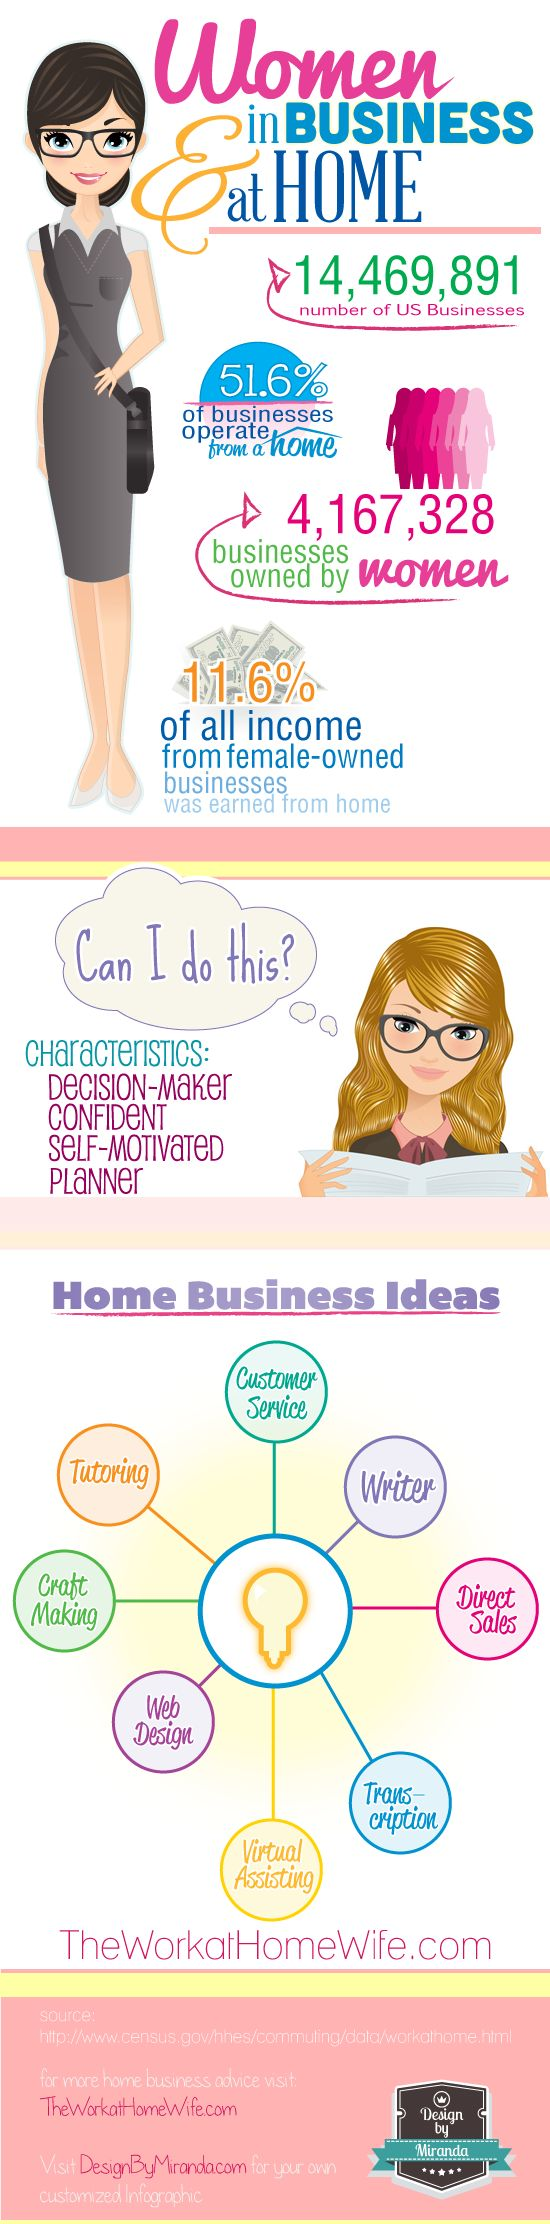 Have you ever considered starting a home biz? Here is a great infographic about women in home-based business.